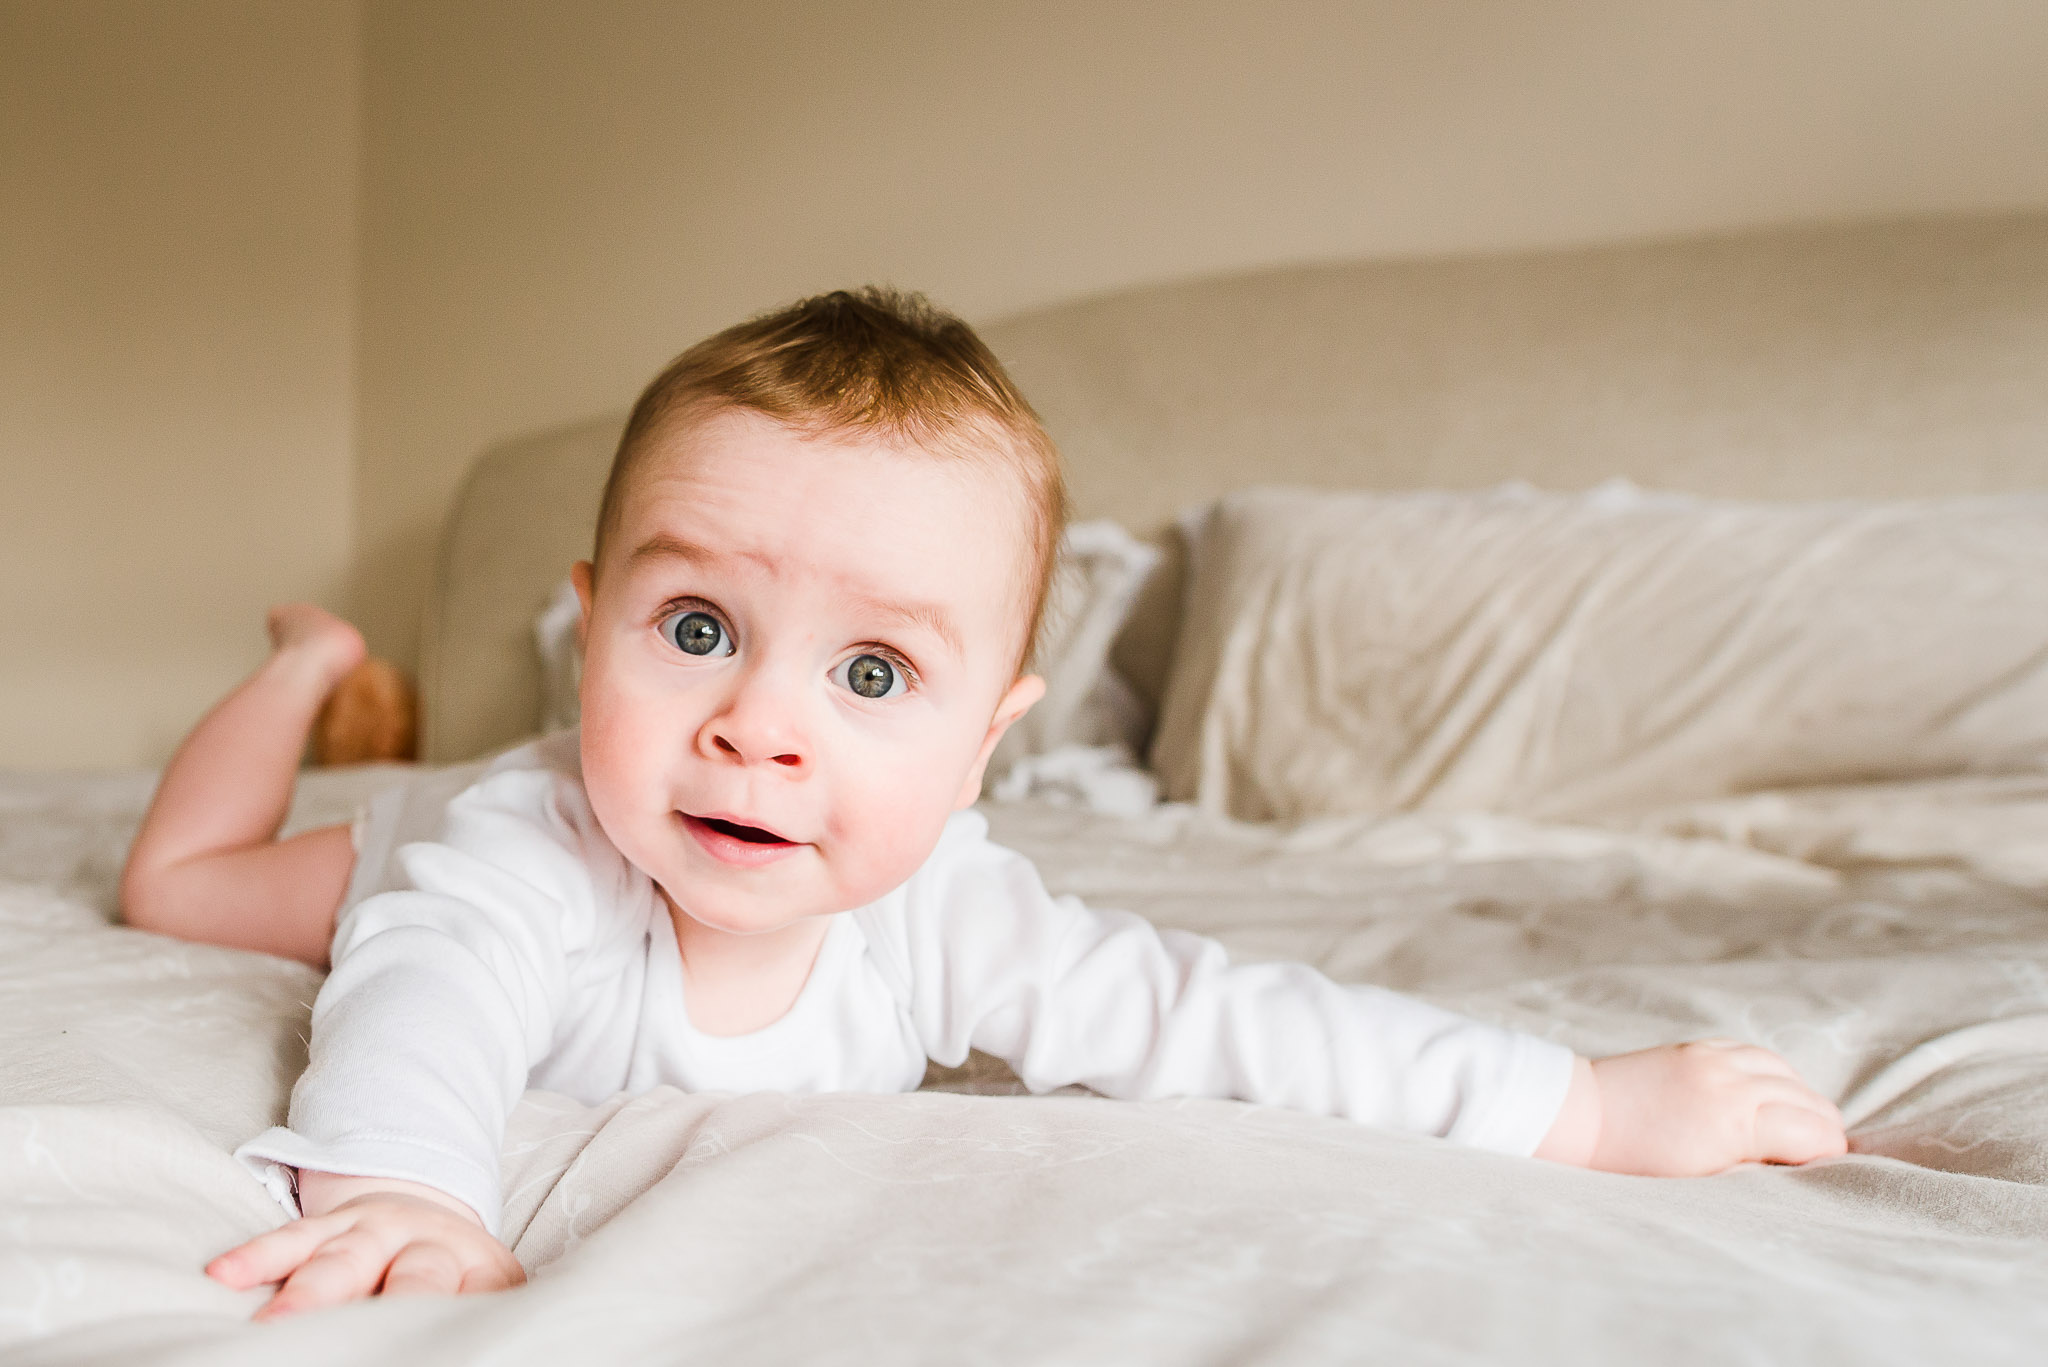 Copy of Baby boy posing on parent's bed - adorable smile. Baby portrait.